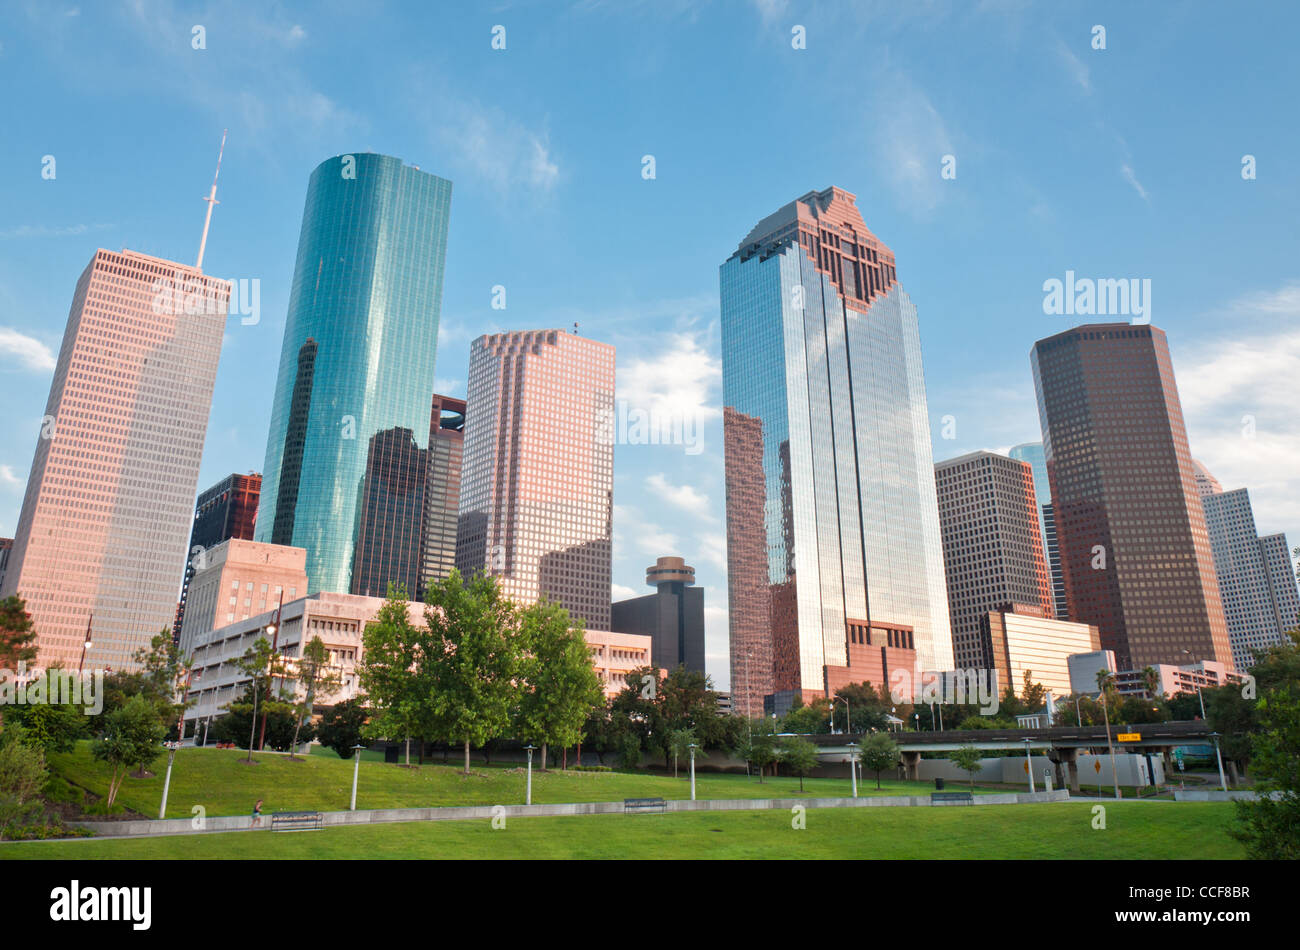 Houston is a vivid city constantly changing and growing. The skyline is especially green and esthetic. - Stock Image